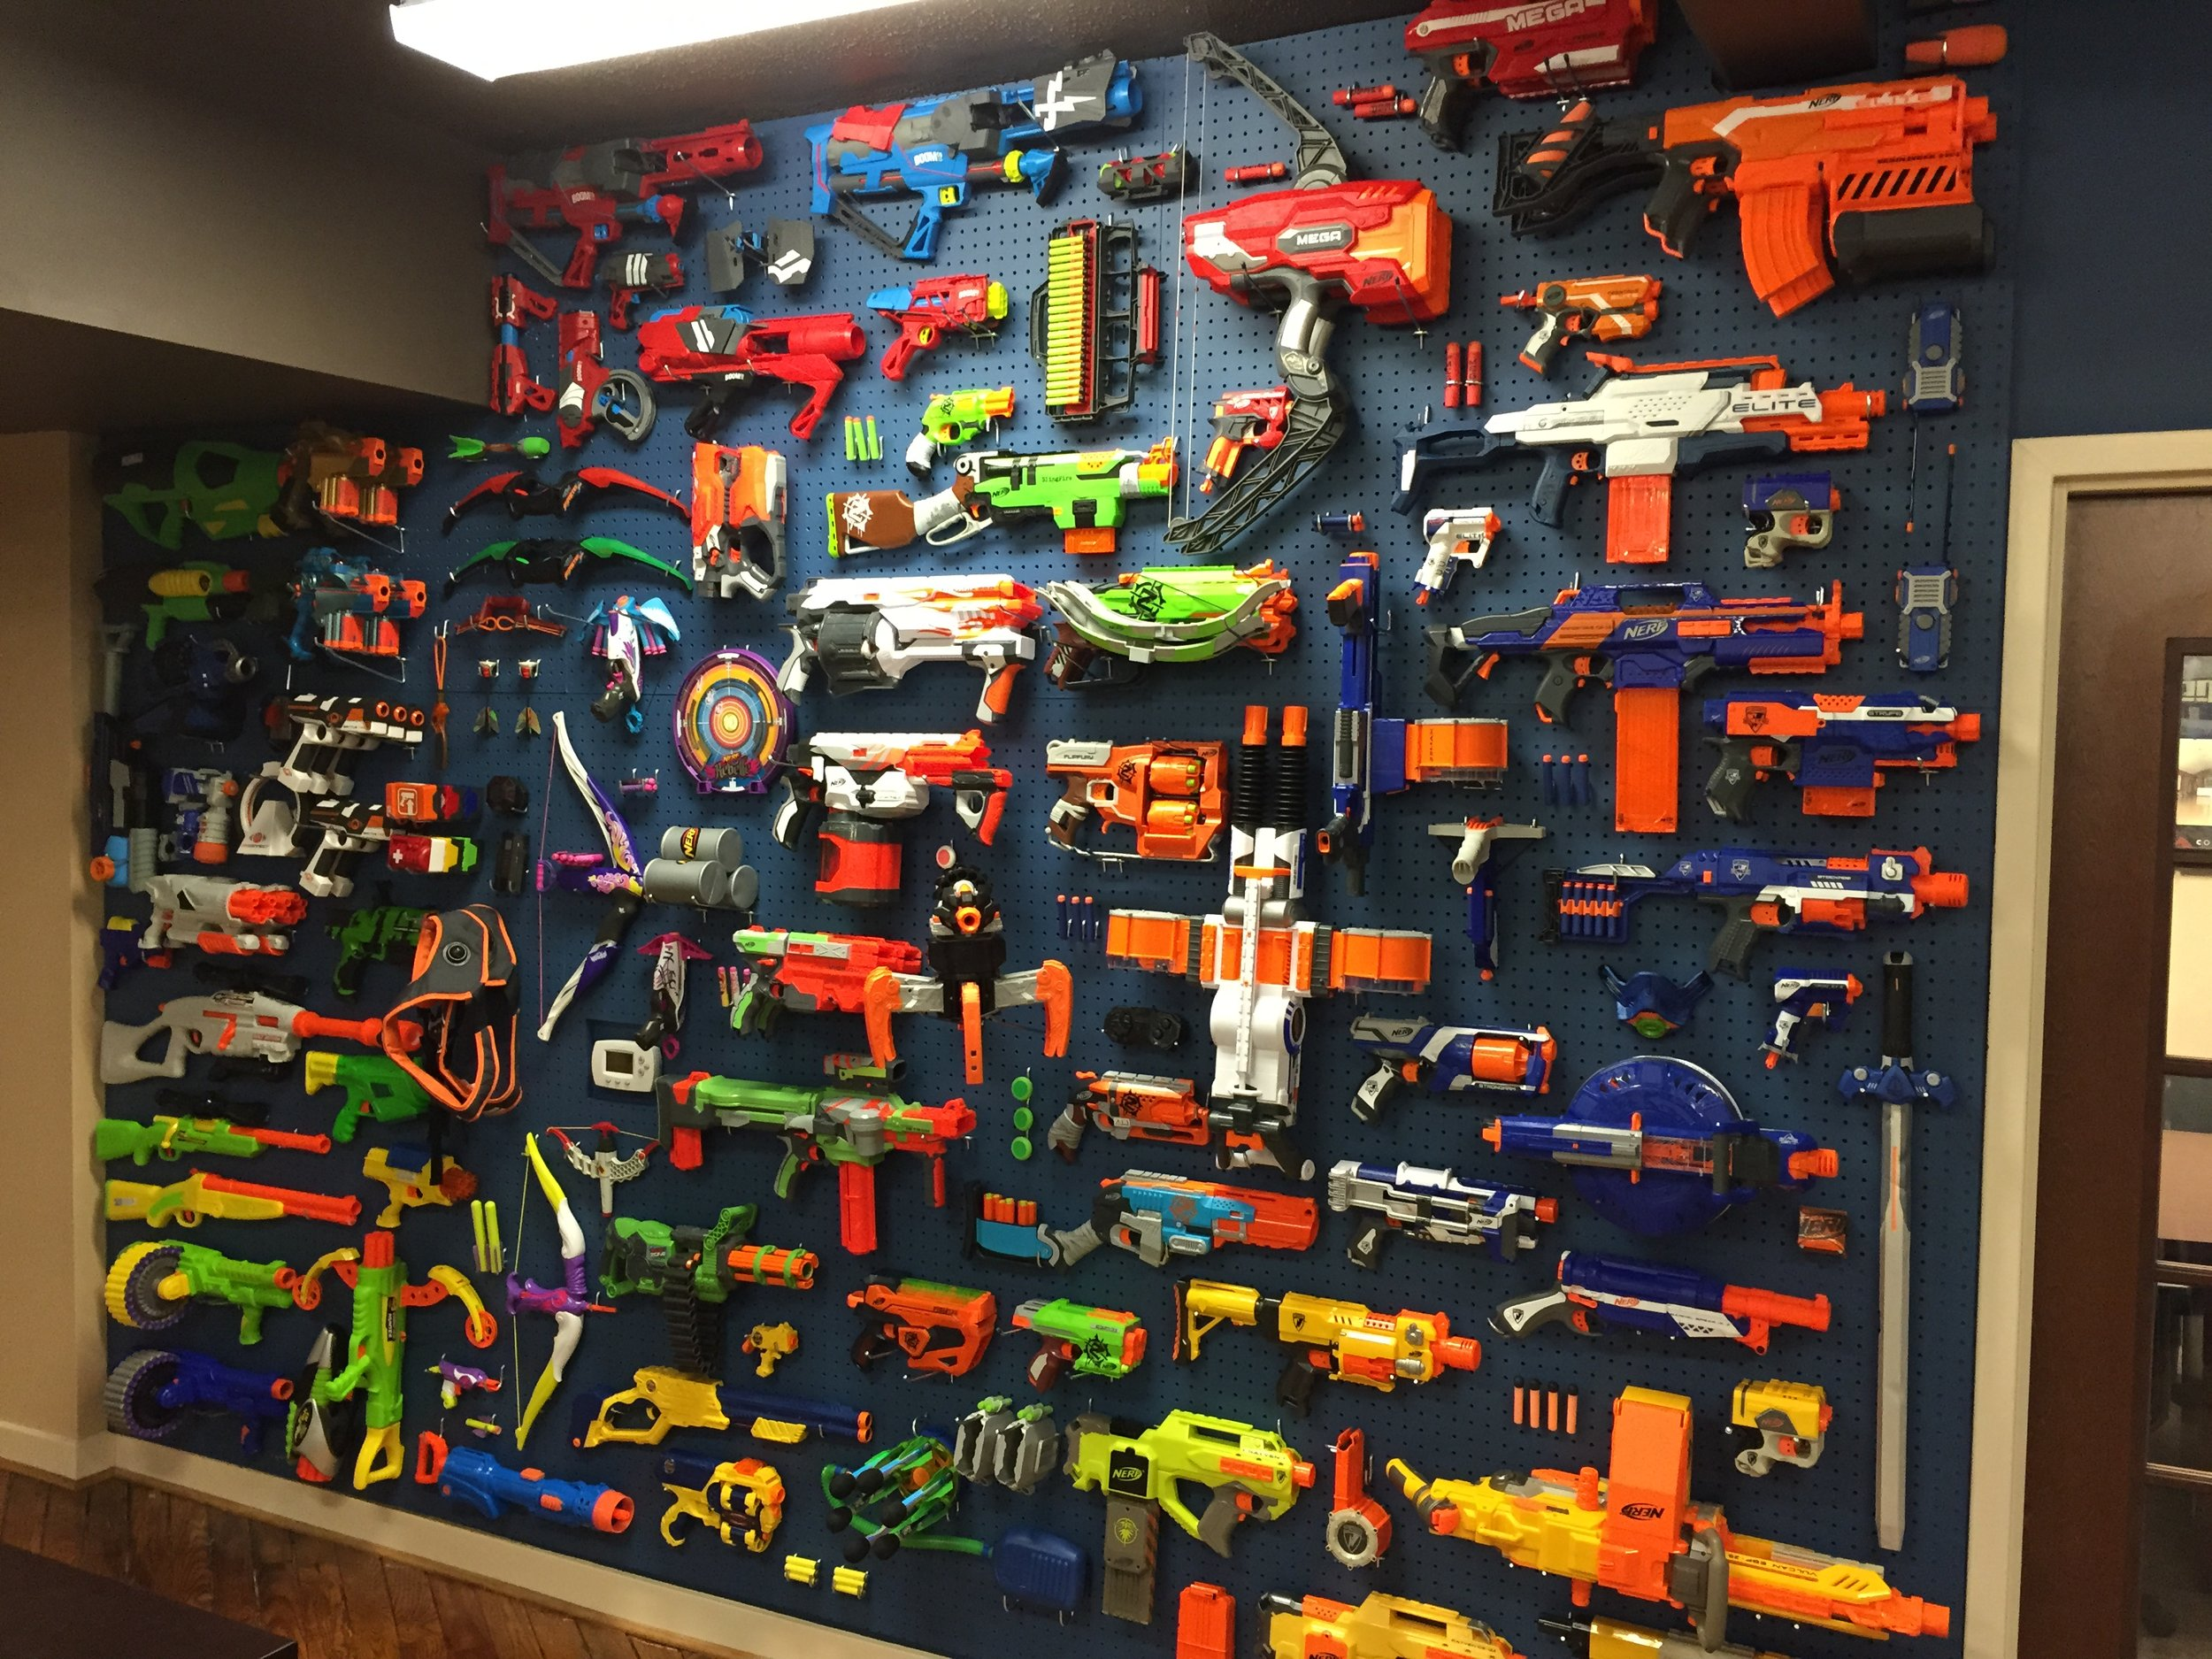 Why I'm Throwing Out my (Nerf) Guns - Theology Corner